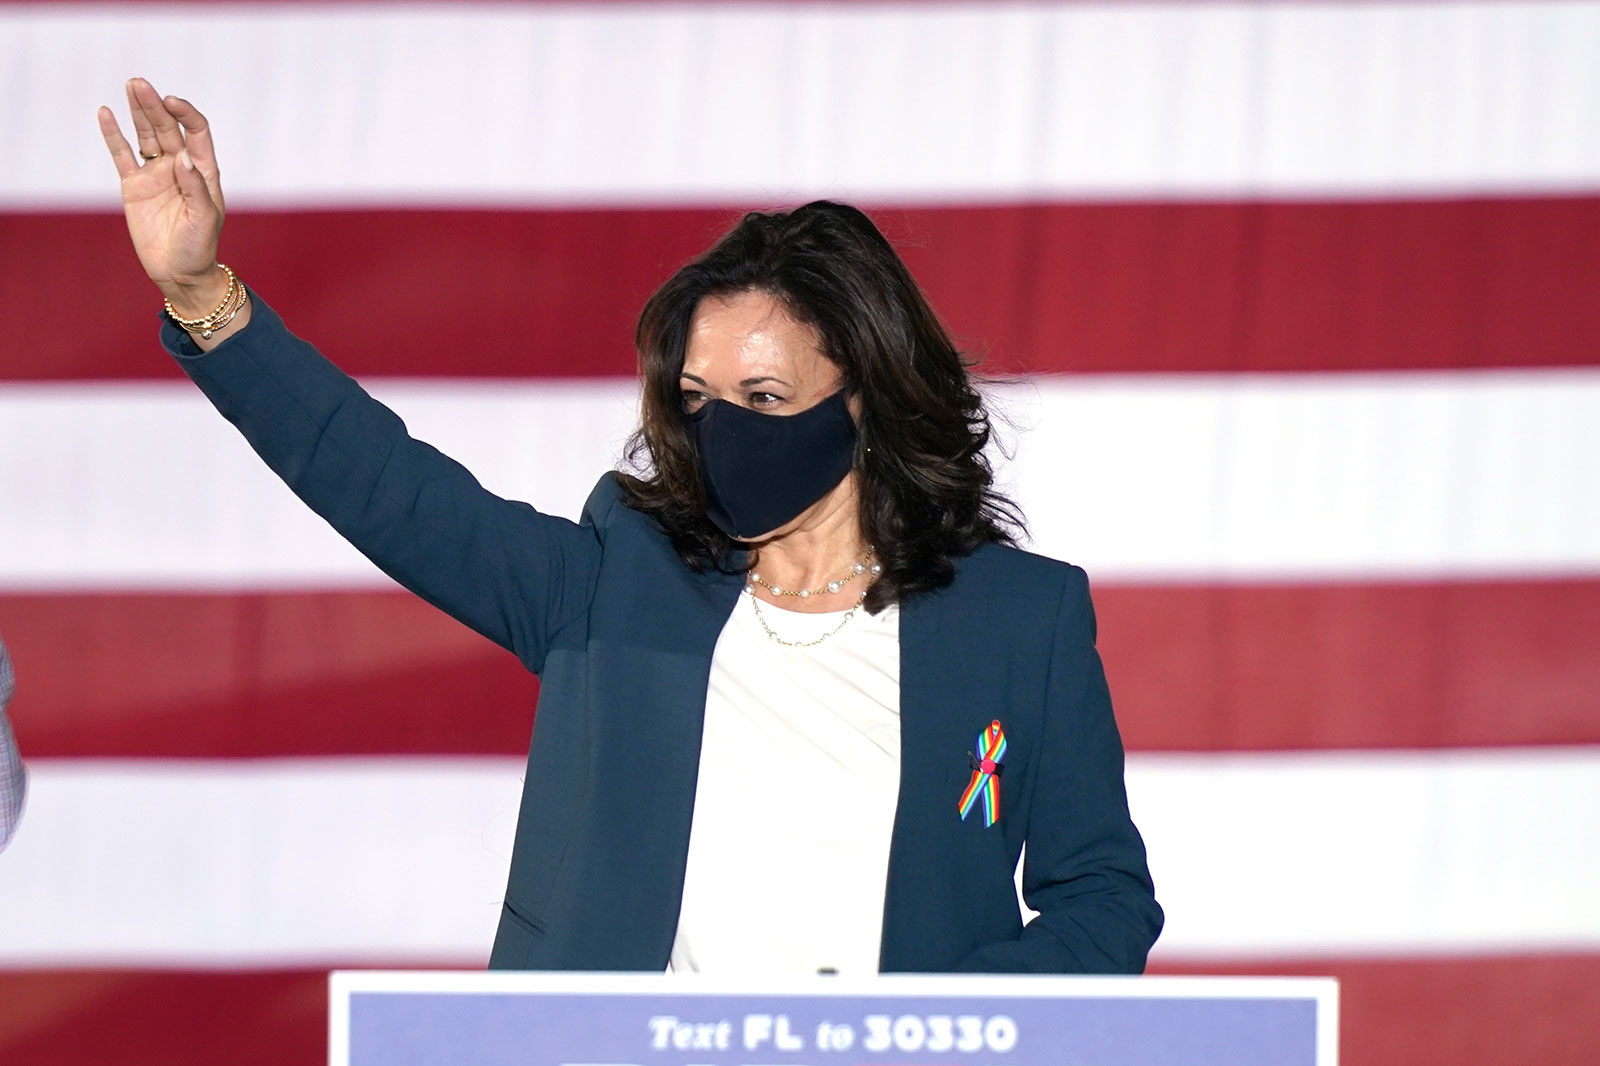 Sen. Kamala Harris waves to supporters during a campaign event in Orlando, Florida, on October 19.